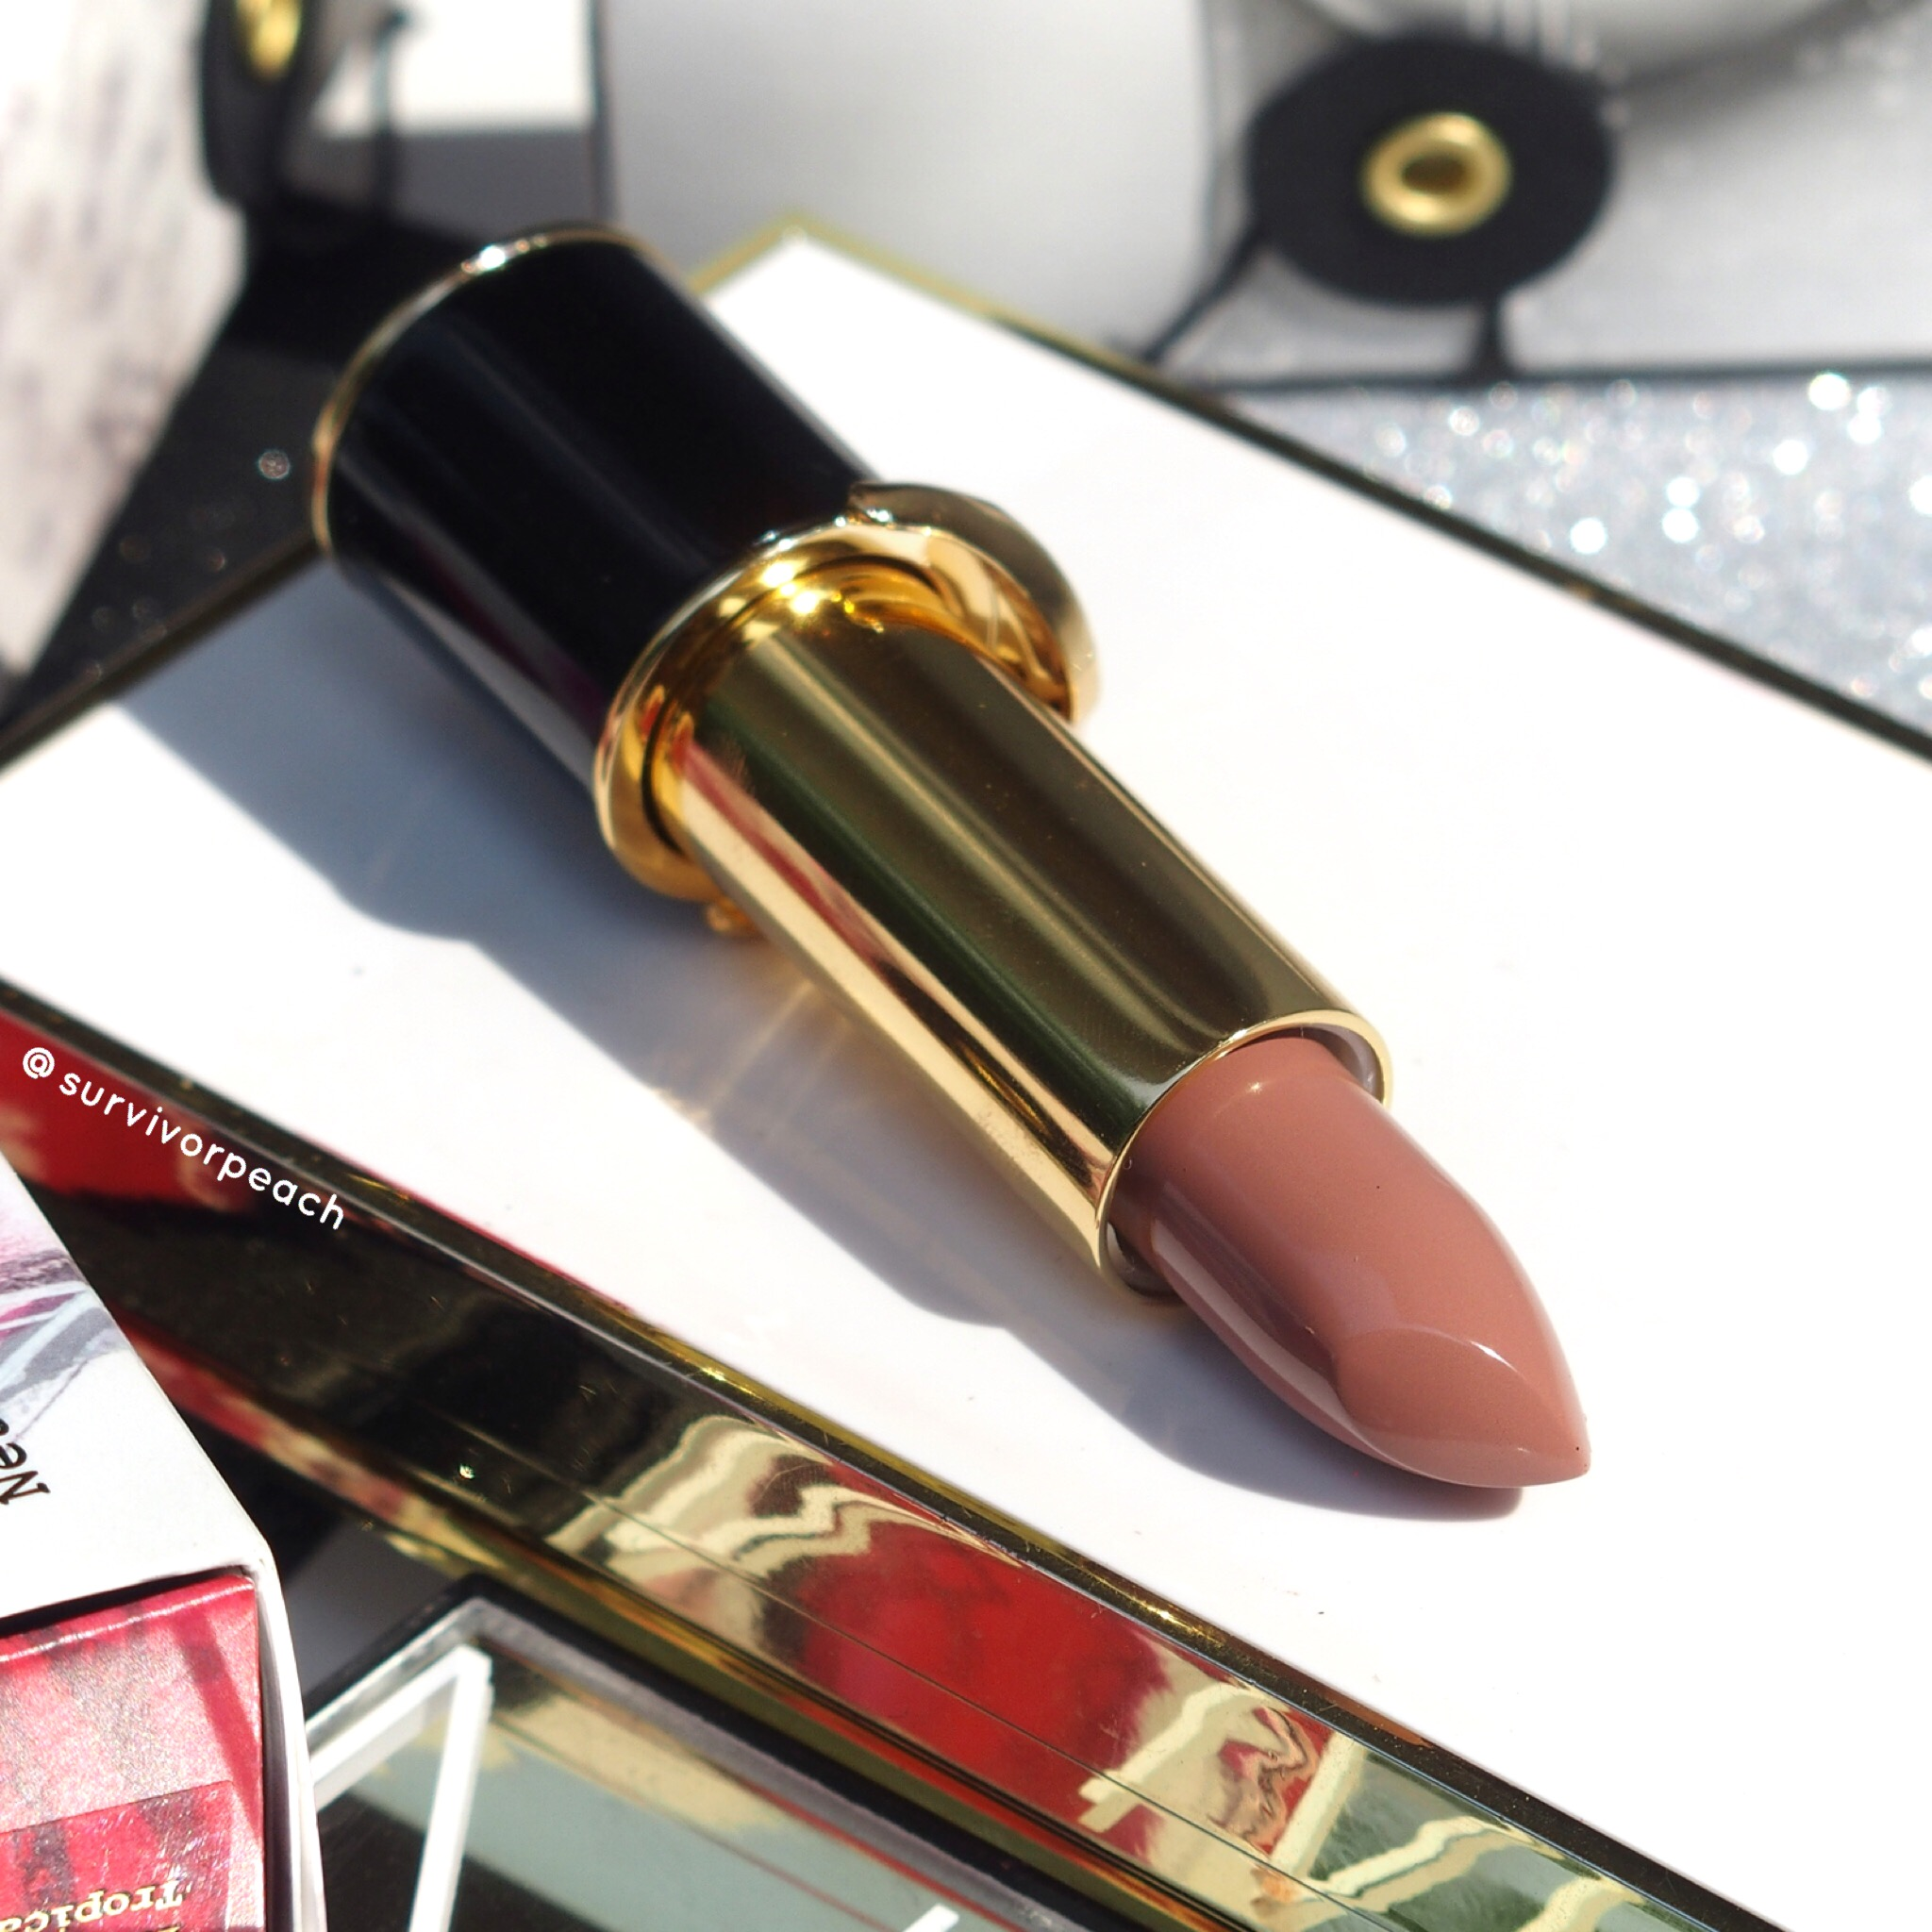 Pat McGrath Labs Luxe Trance Lipsticks in shade Donatella